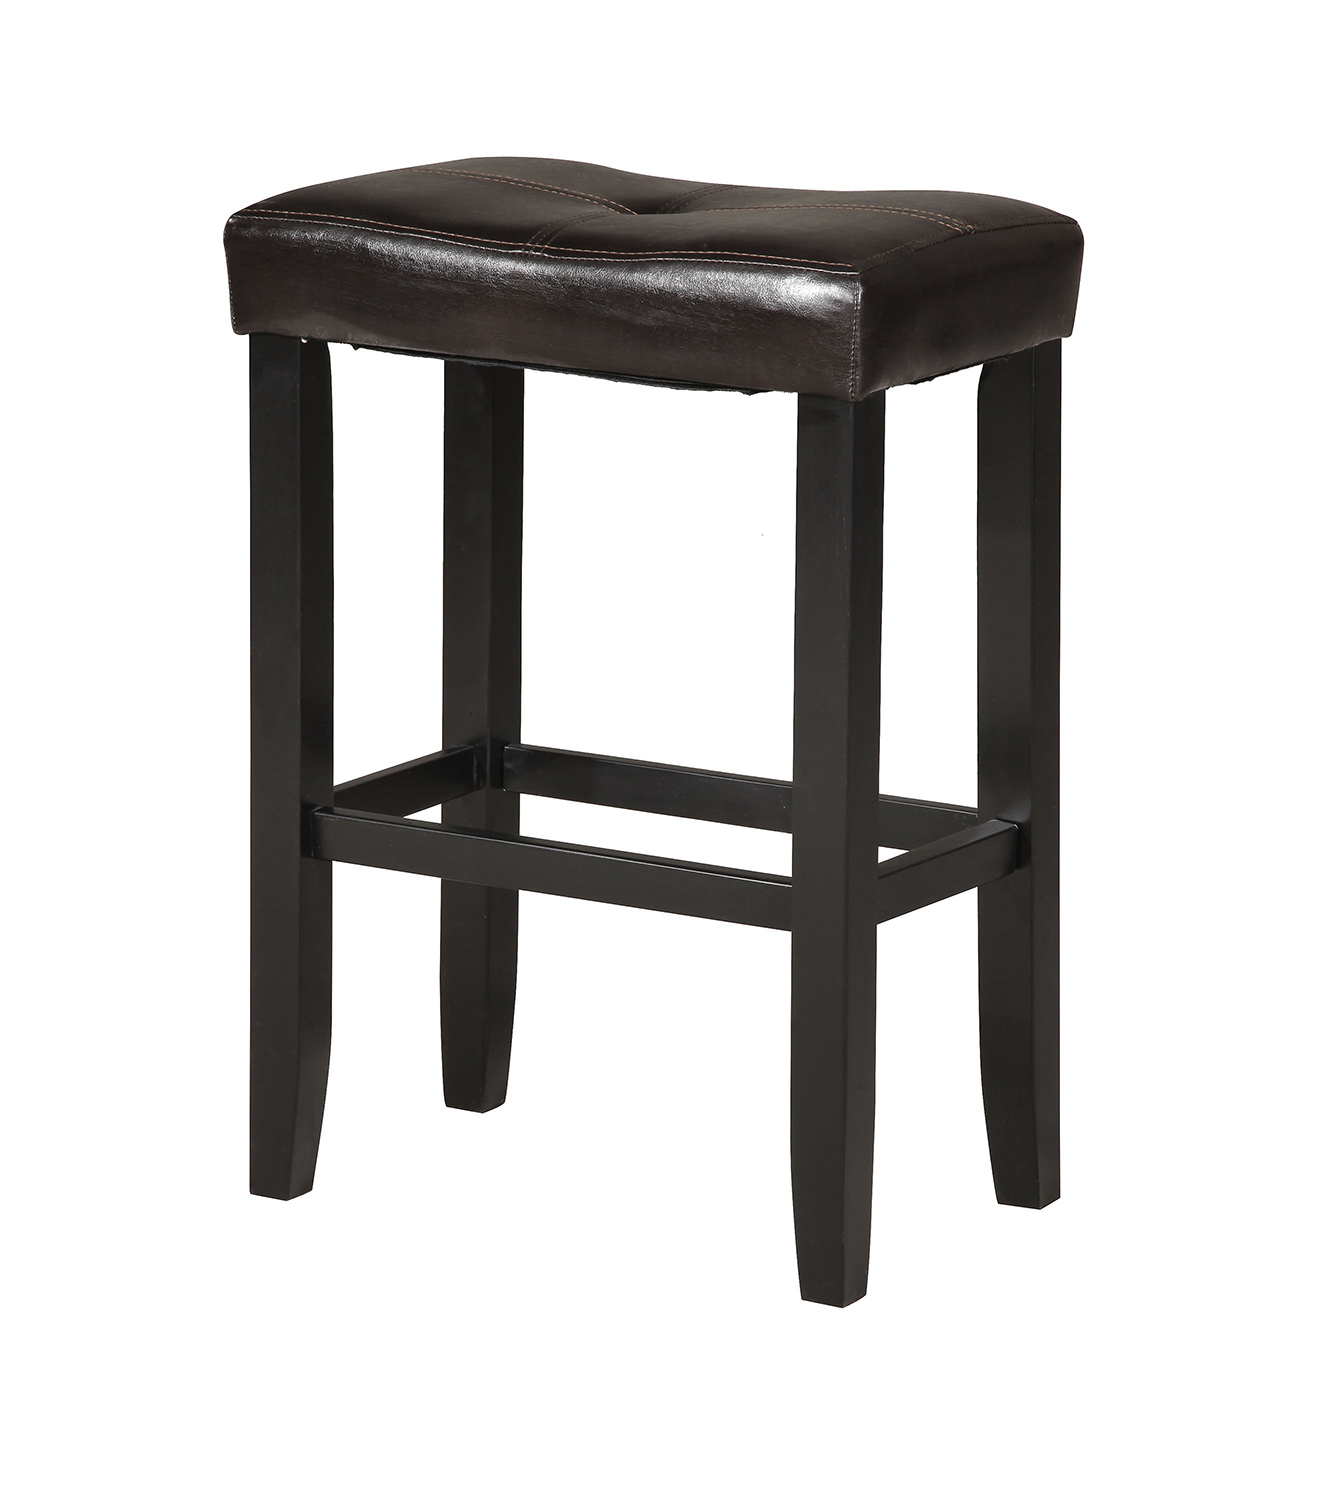 Acme Micha Counter Height Stool - Espresso Vinyl/Black